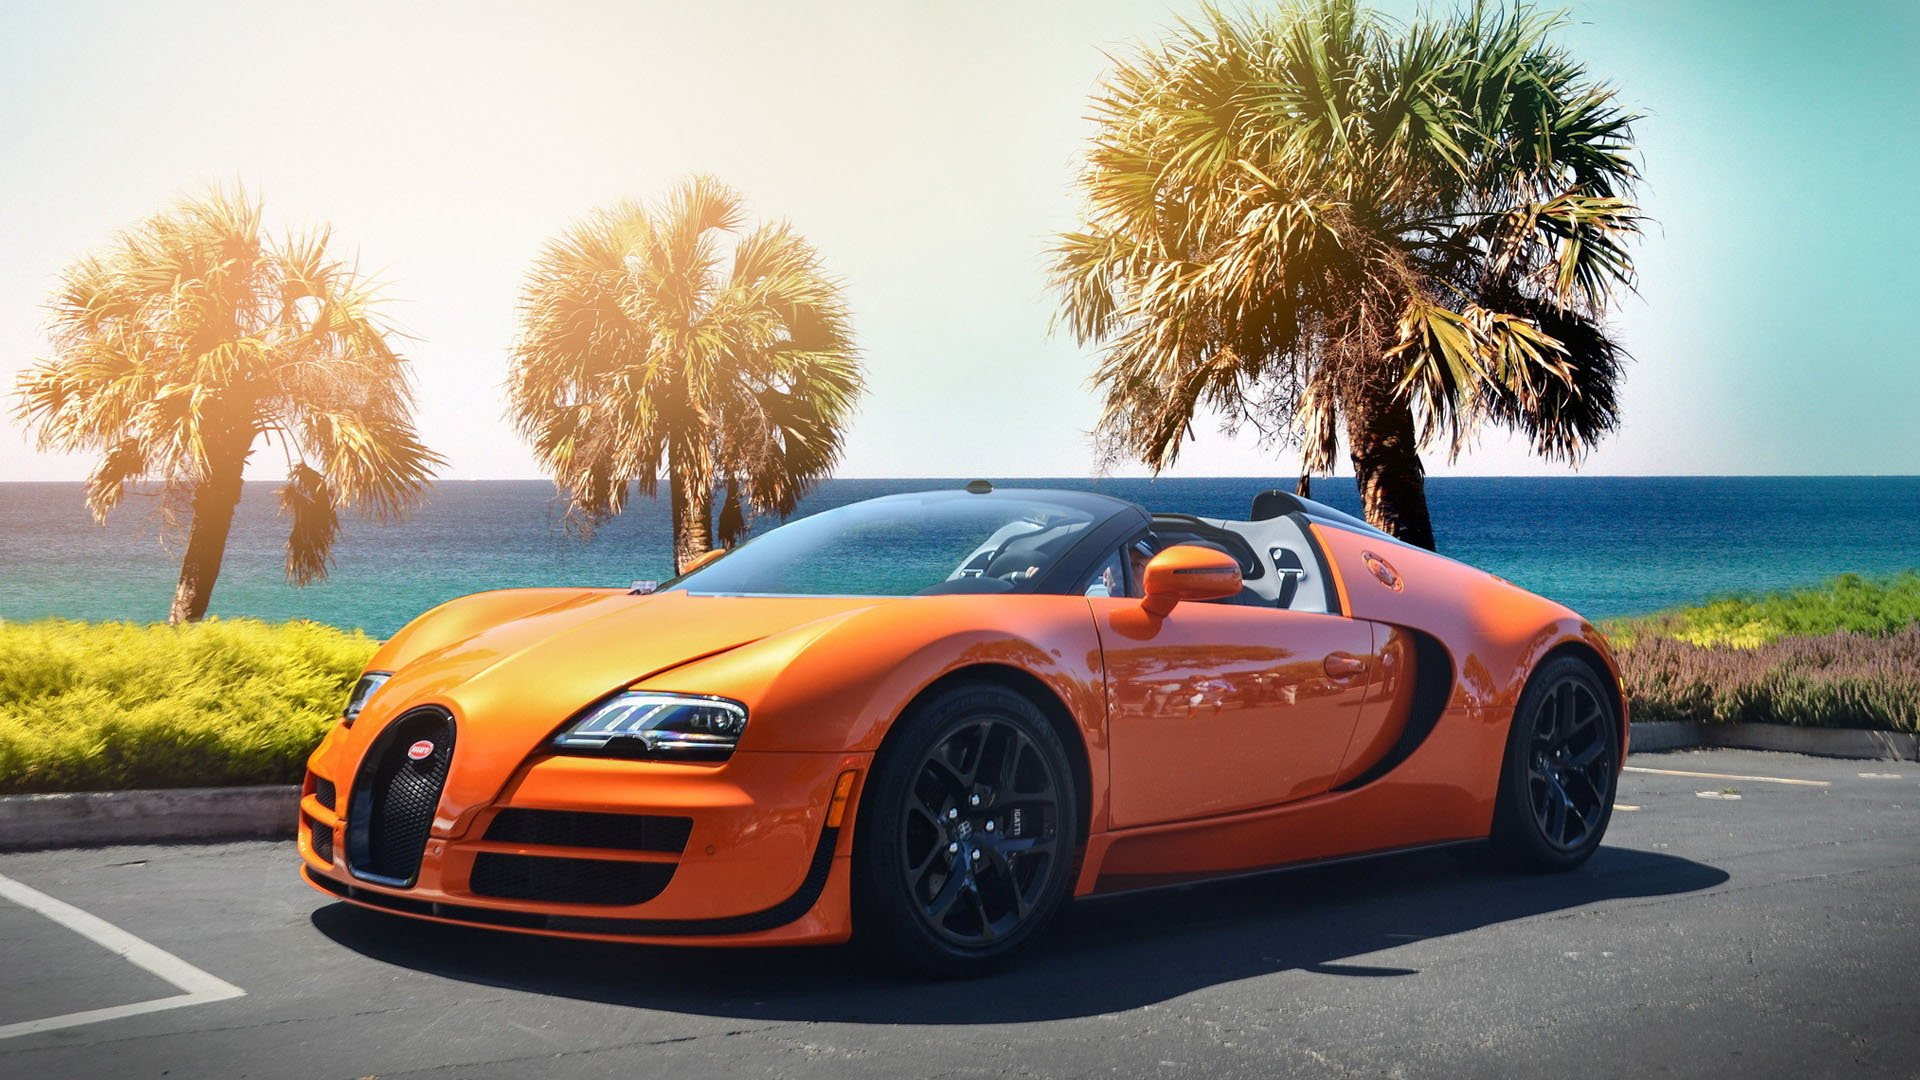 Bugatti wallpaper ULTRA HD Collection 1920x1080